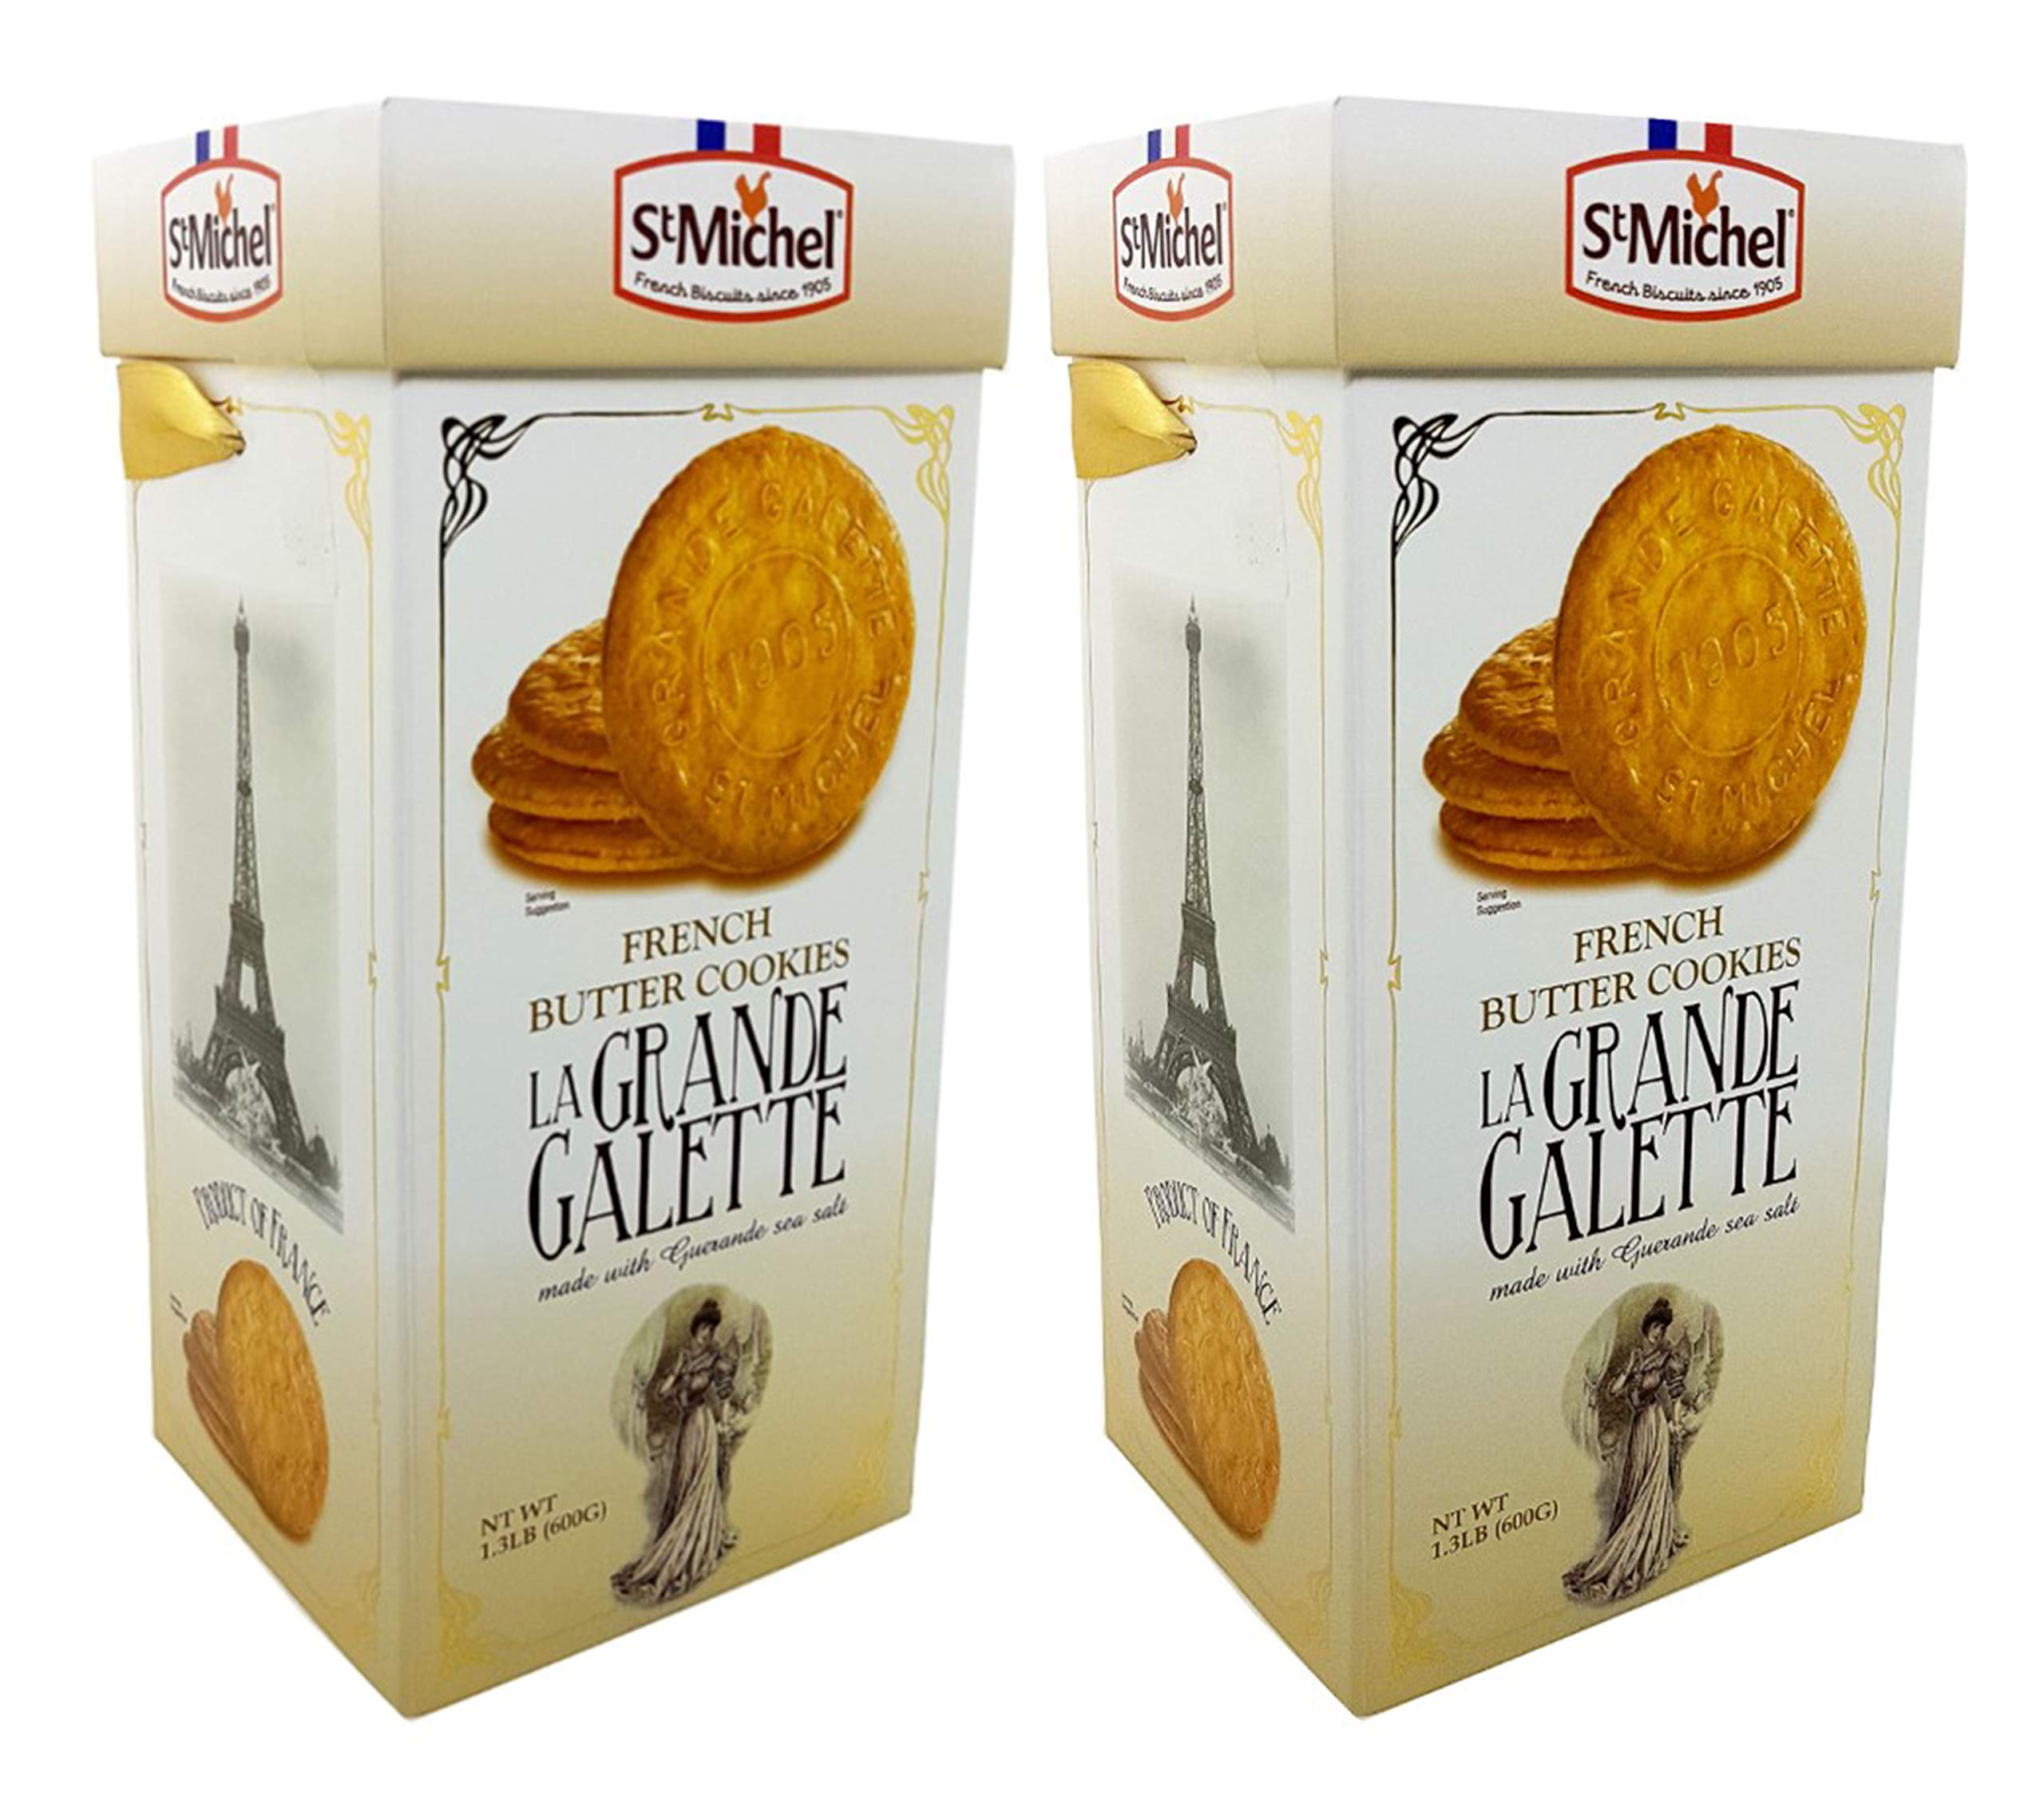 St Michel La Grande Galette French Butter Cookies Biscuits 1.3 LB (Pack of 2)